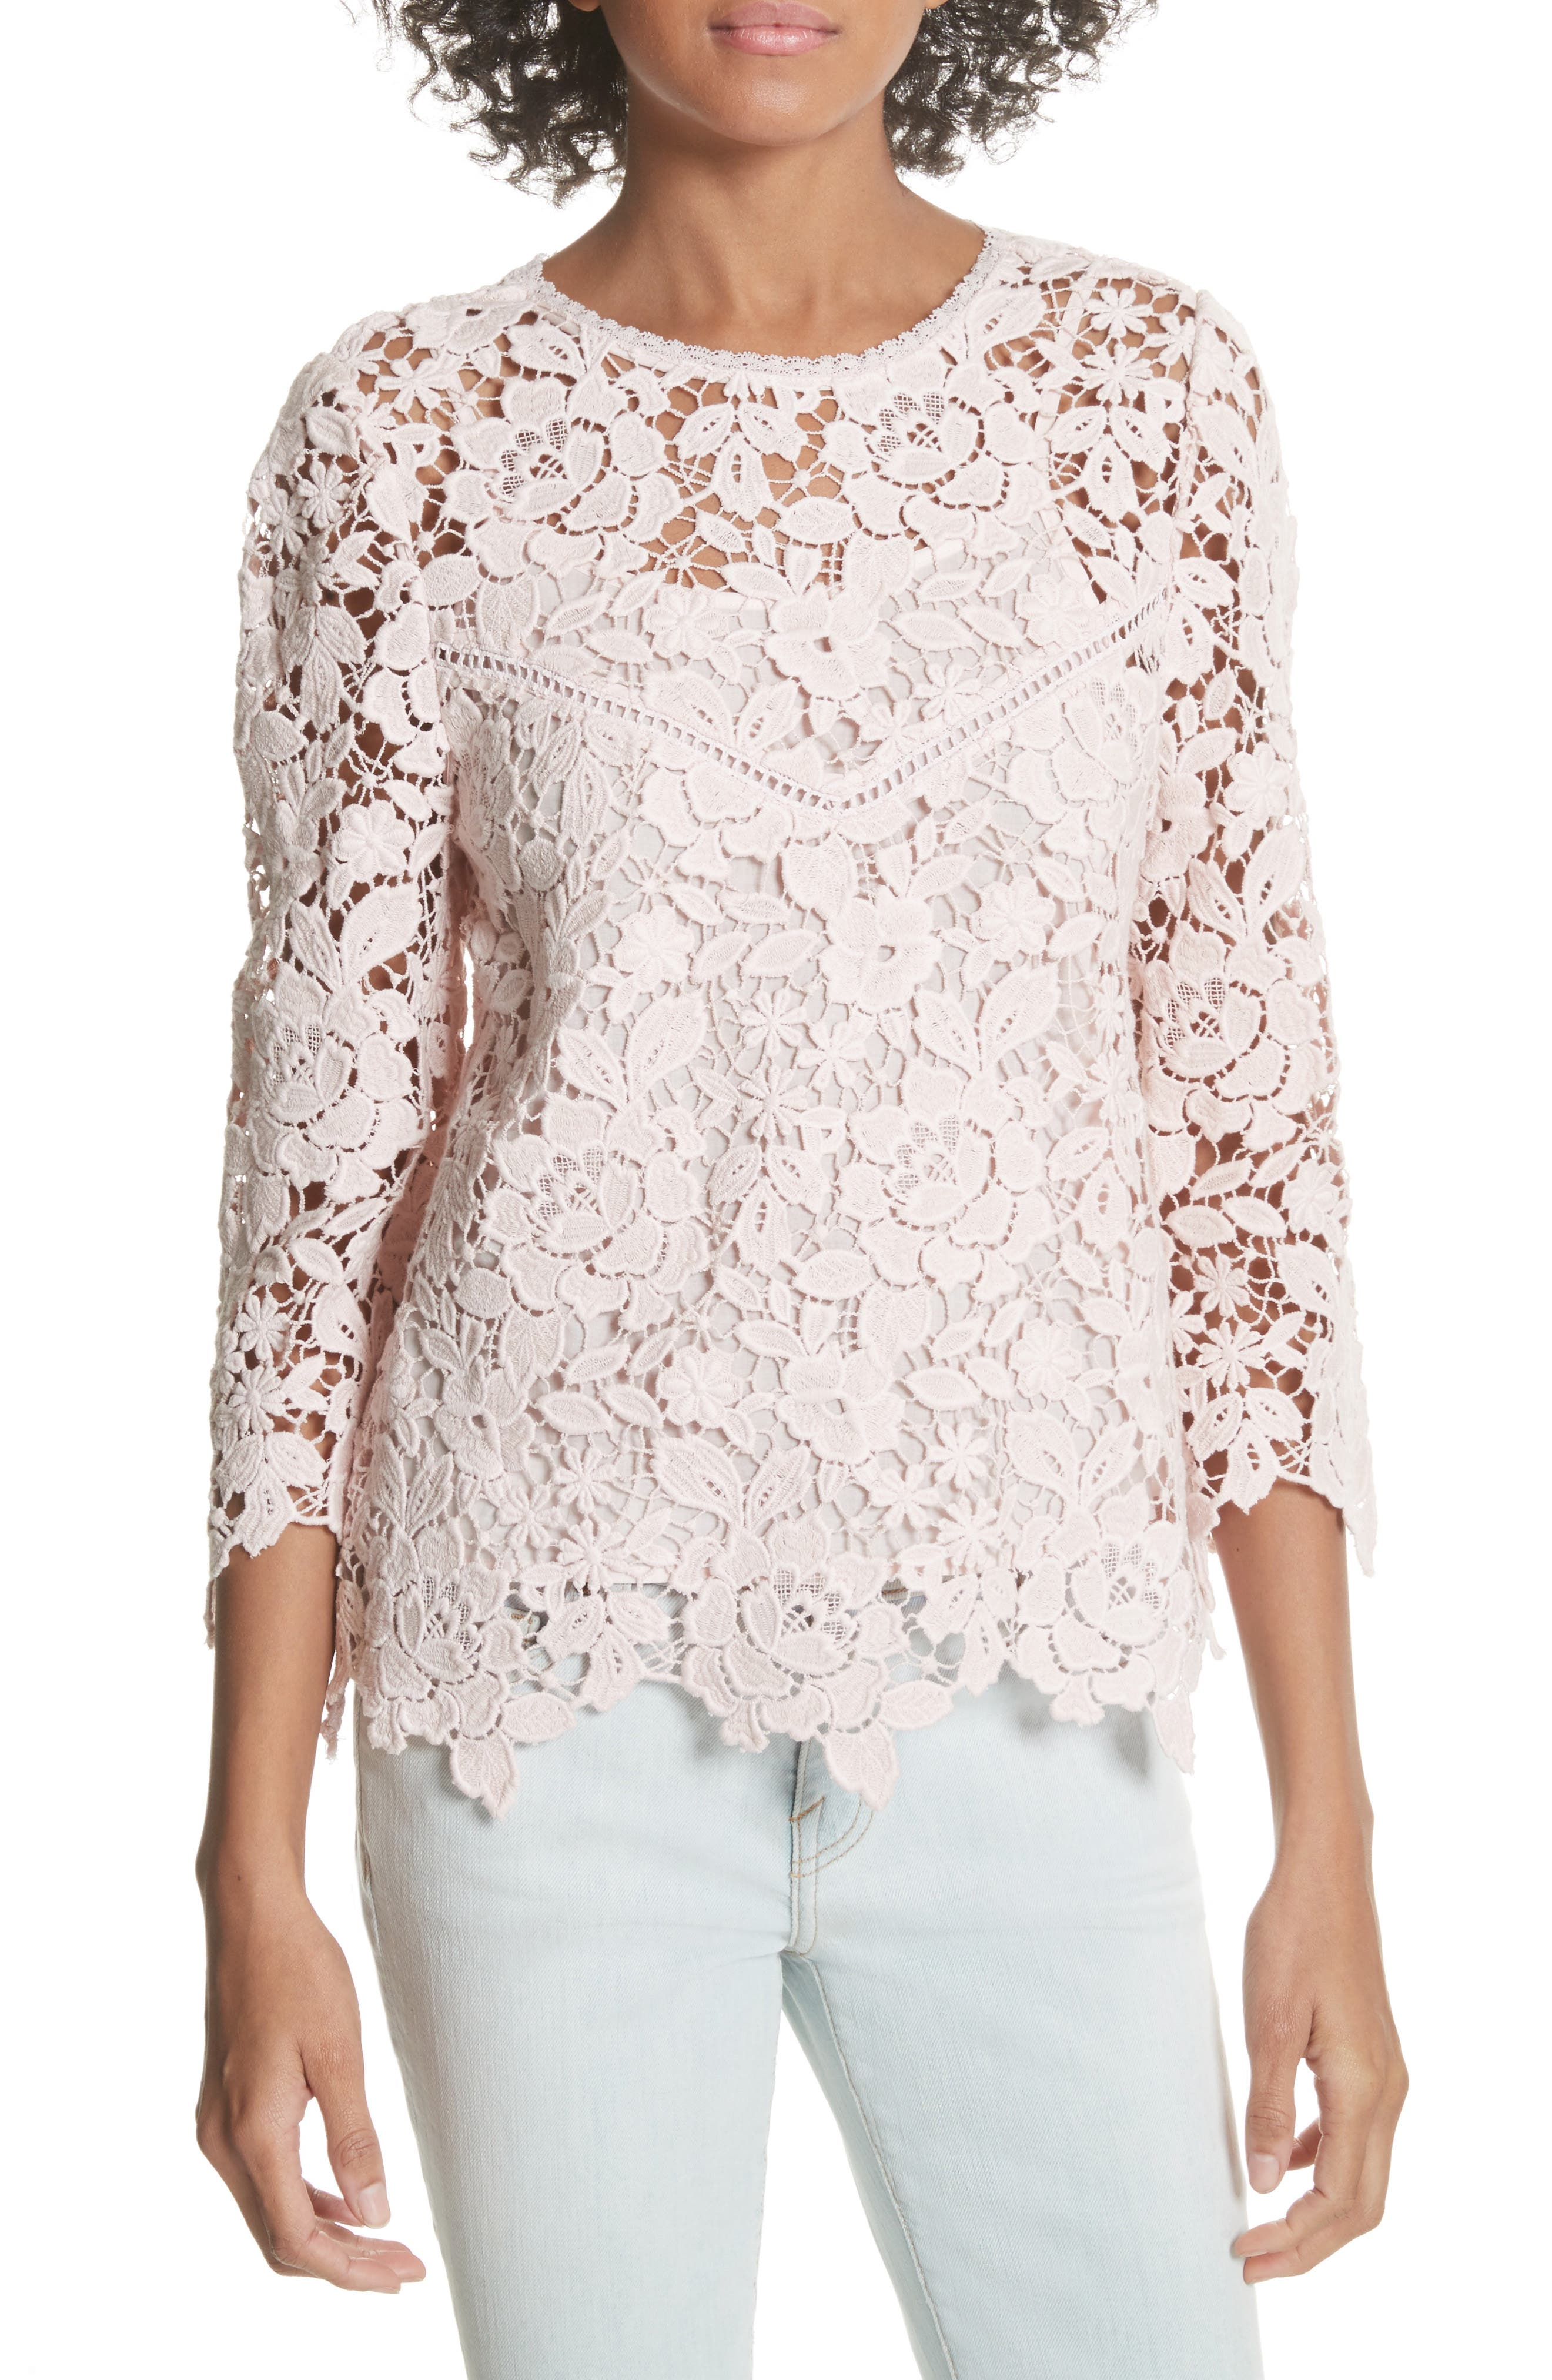 Charnette Lace Top,                             Main thumbnail 1, color,                             Rosewater